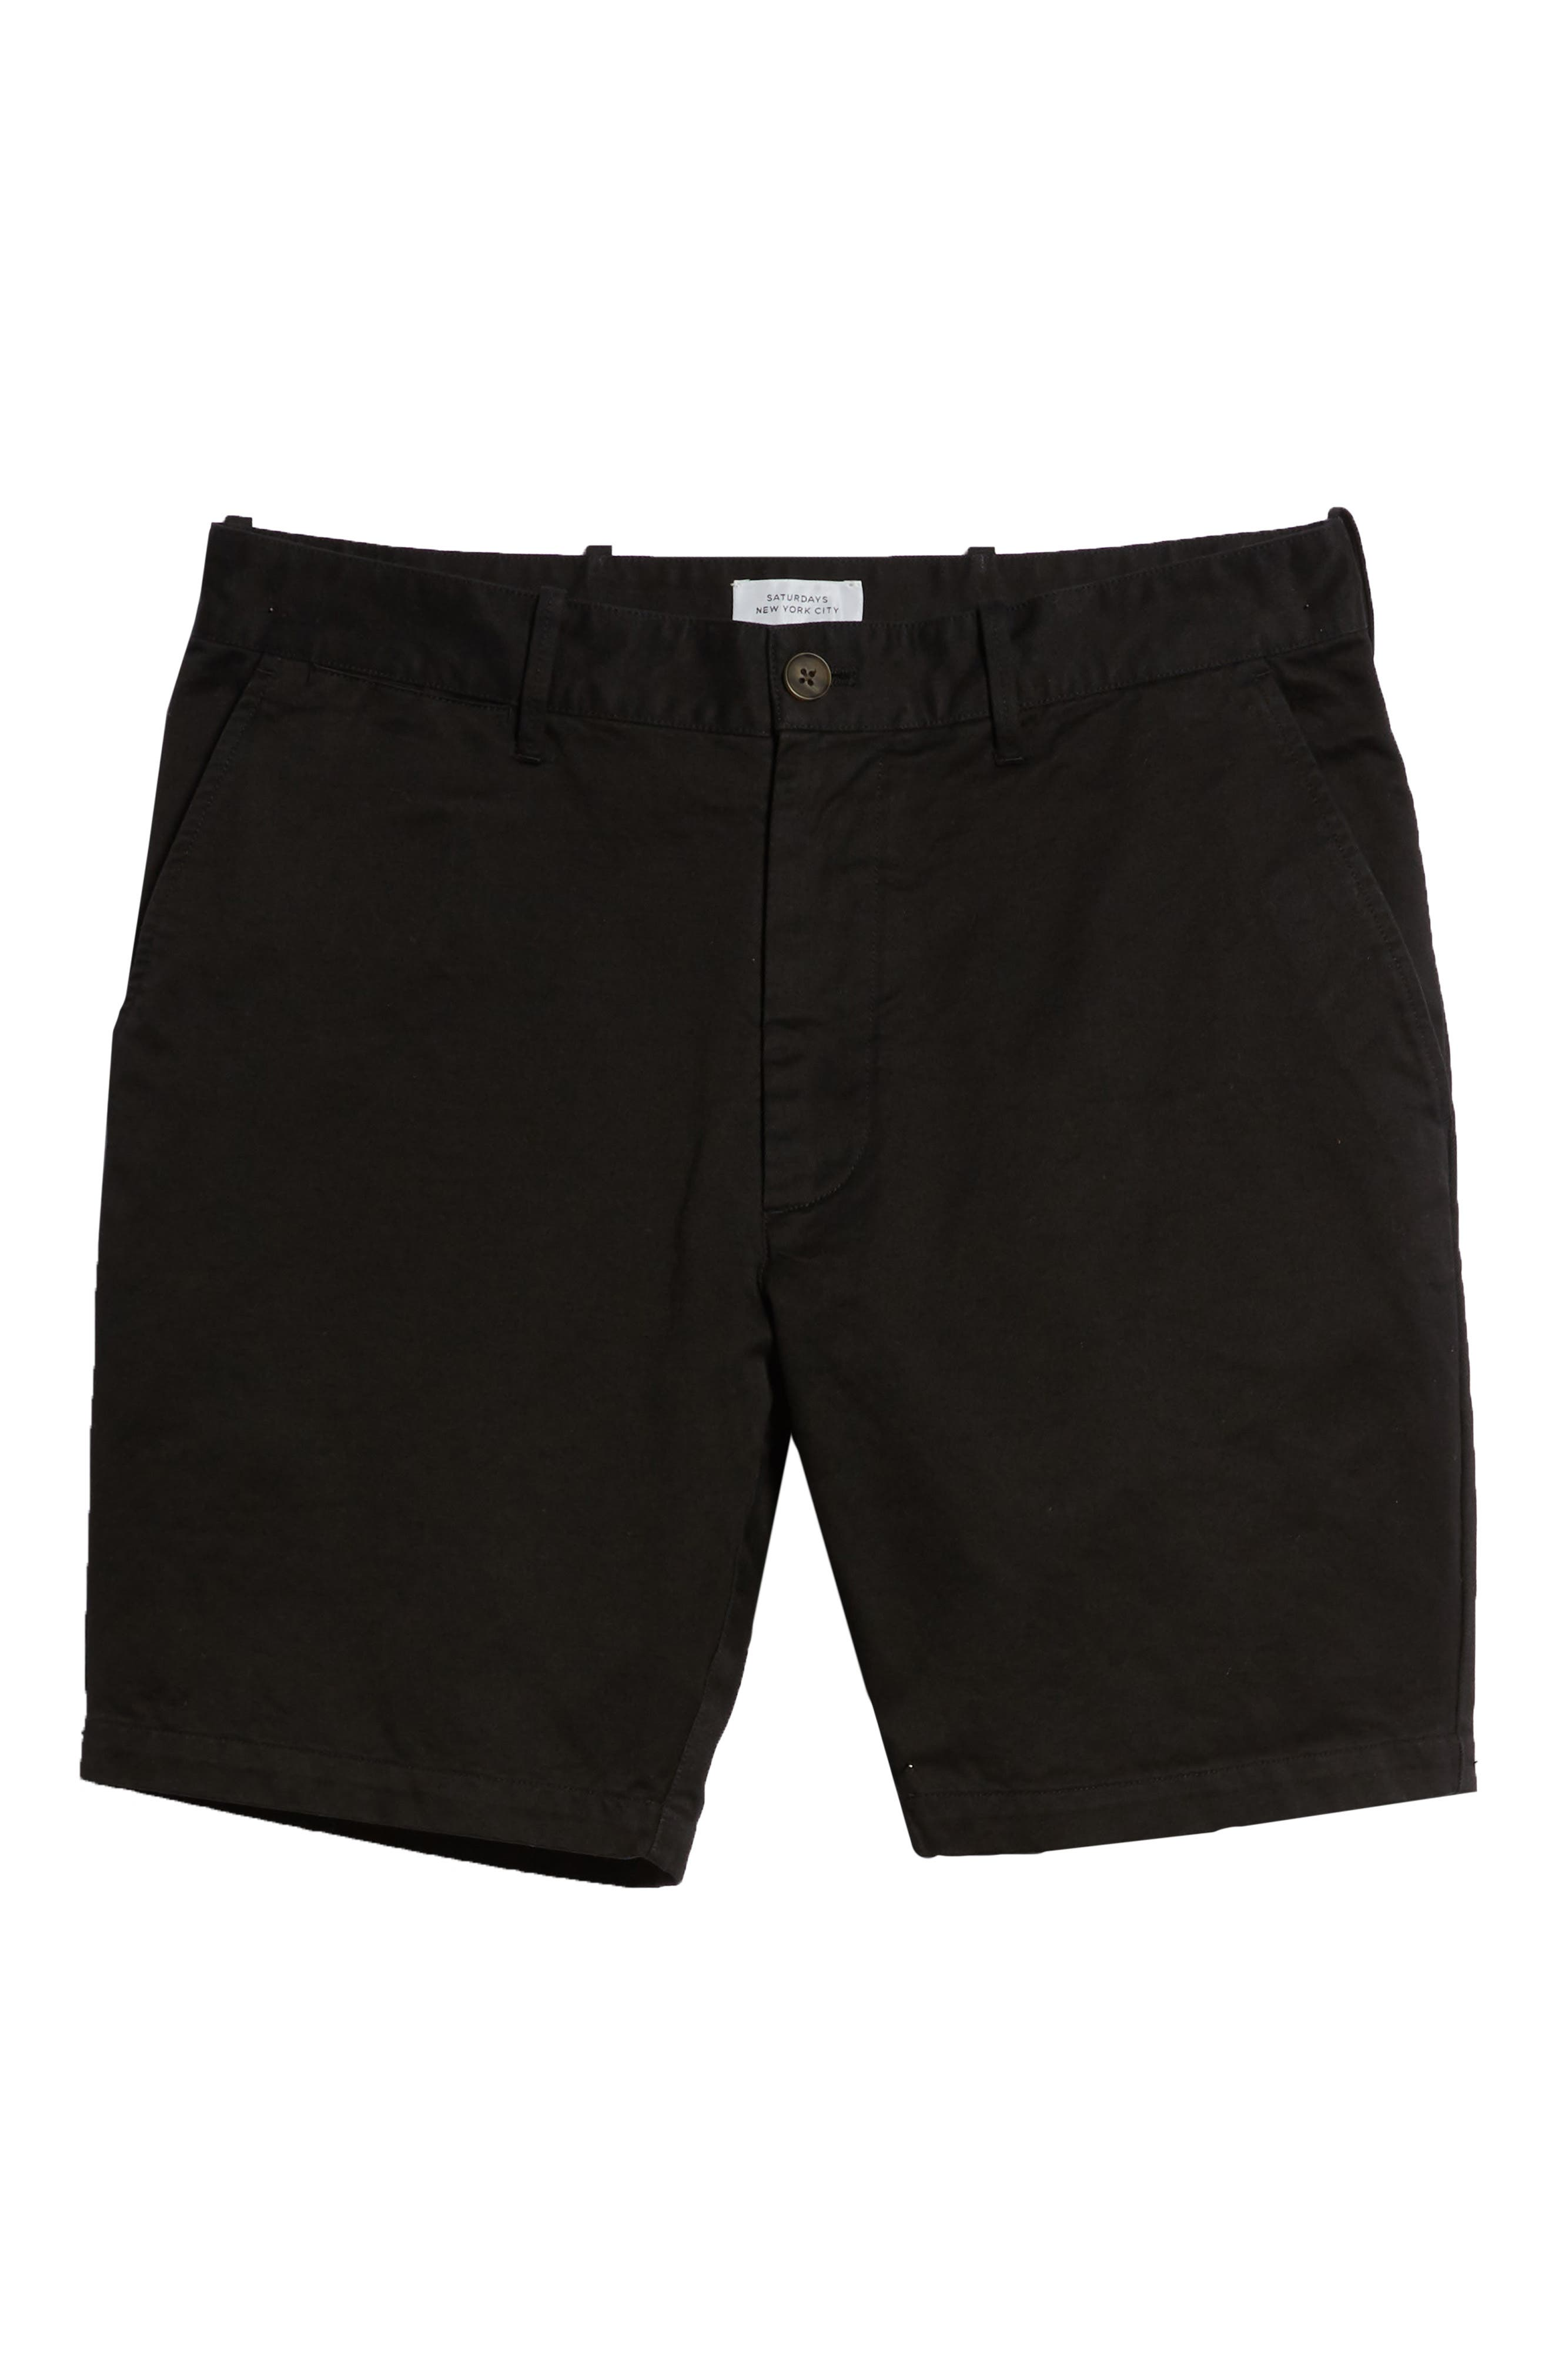 SATURDAYS NYC,                             Evan Shorts,                             Alternate thumbnail 6, color,                             001